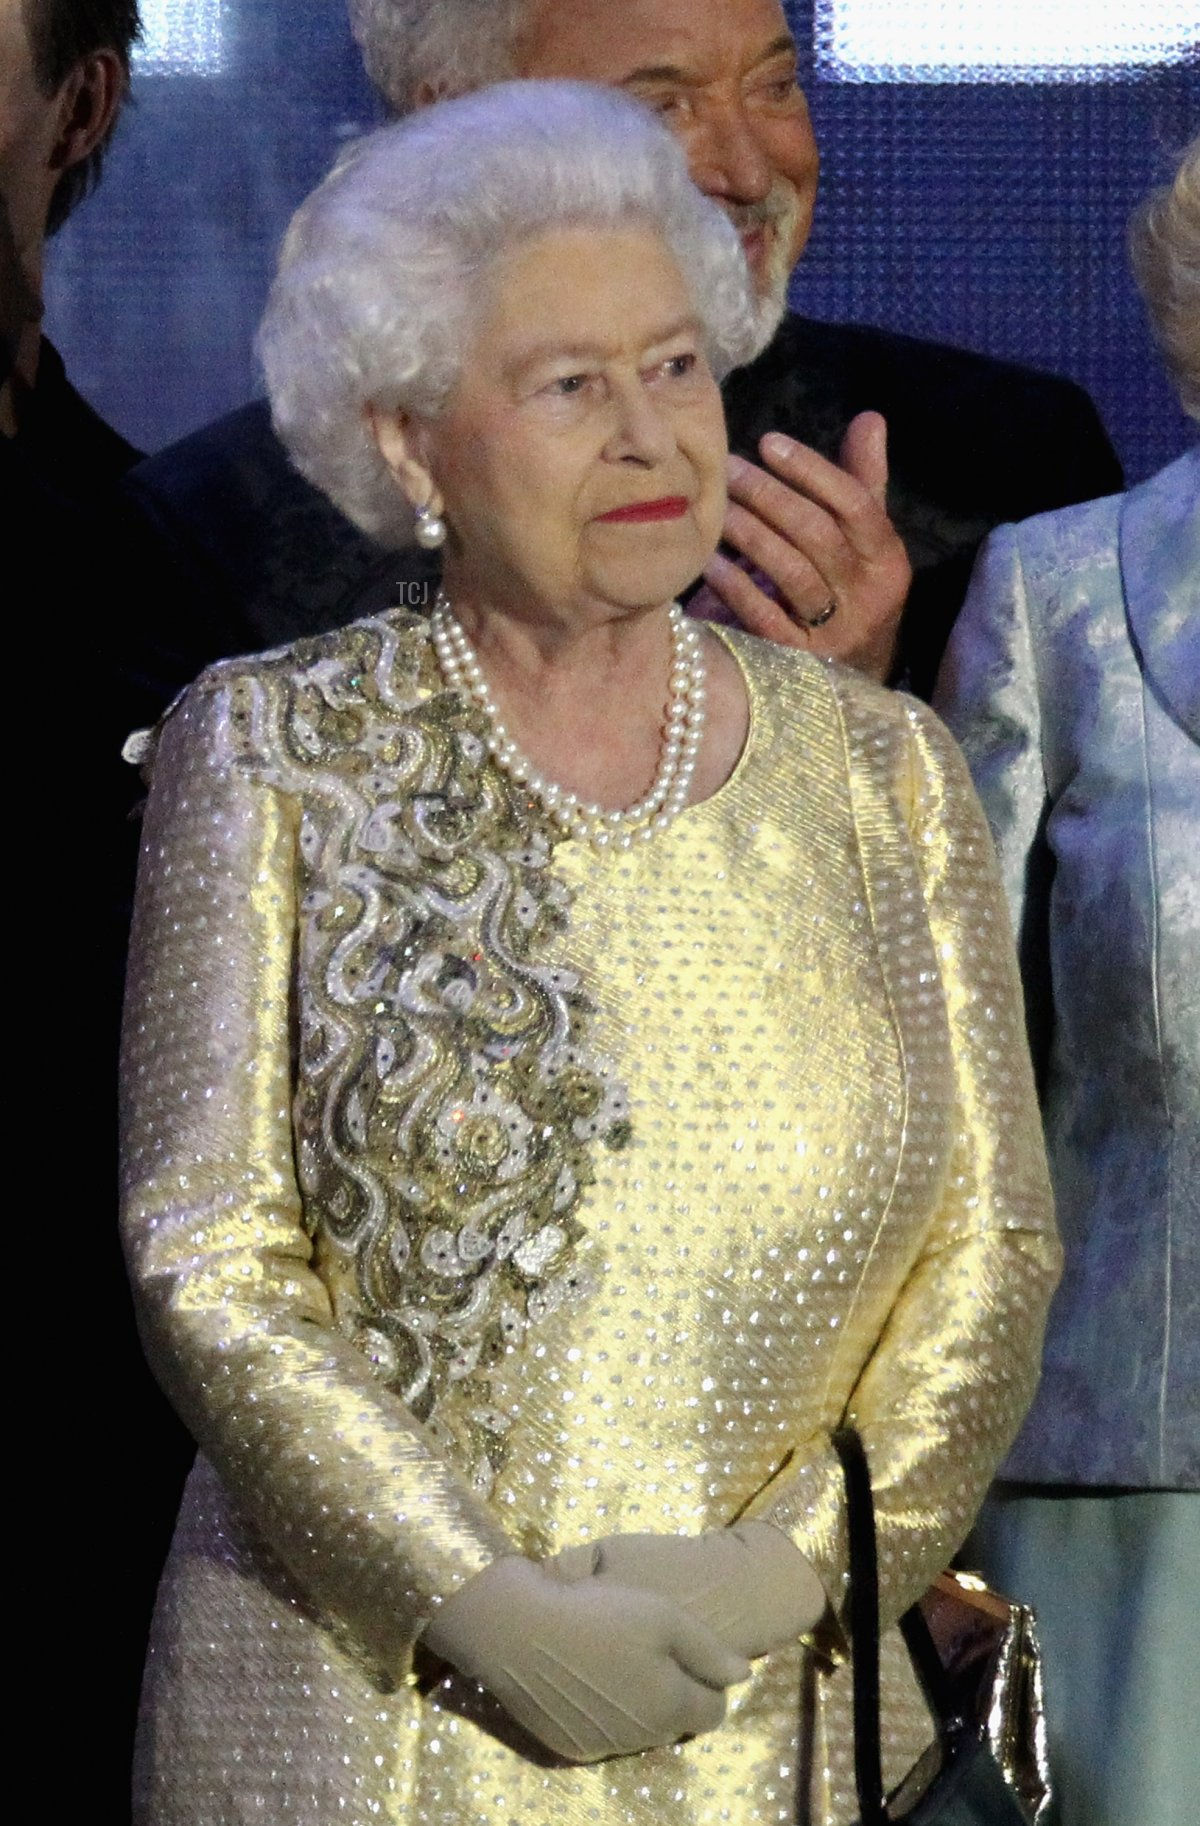 LONDON, ENGLAND - JUNE 04: HM Queen Elizabeth II on stage during the Diamond Jubilee concert at Buckingham Palace on June 4, 2012 in London, England. For only the second time in its history the UK celebrates the Diamond Jubilee of a monarch. Her Majesty Queen Elizabeth II celebrates the 60th anniversary of her ascension to the throne. Thousands of well-wishers from around the world have flocked to London to witness the spectacle of the weekend's celebrations